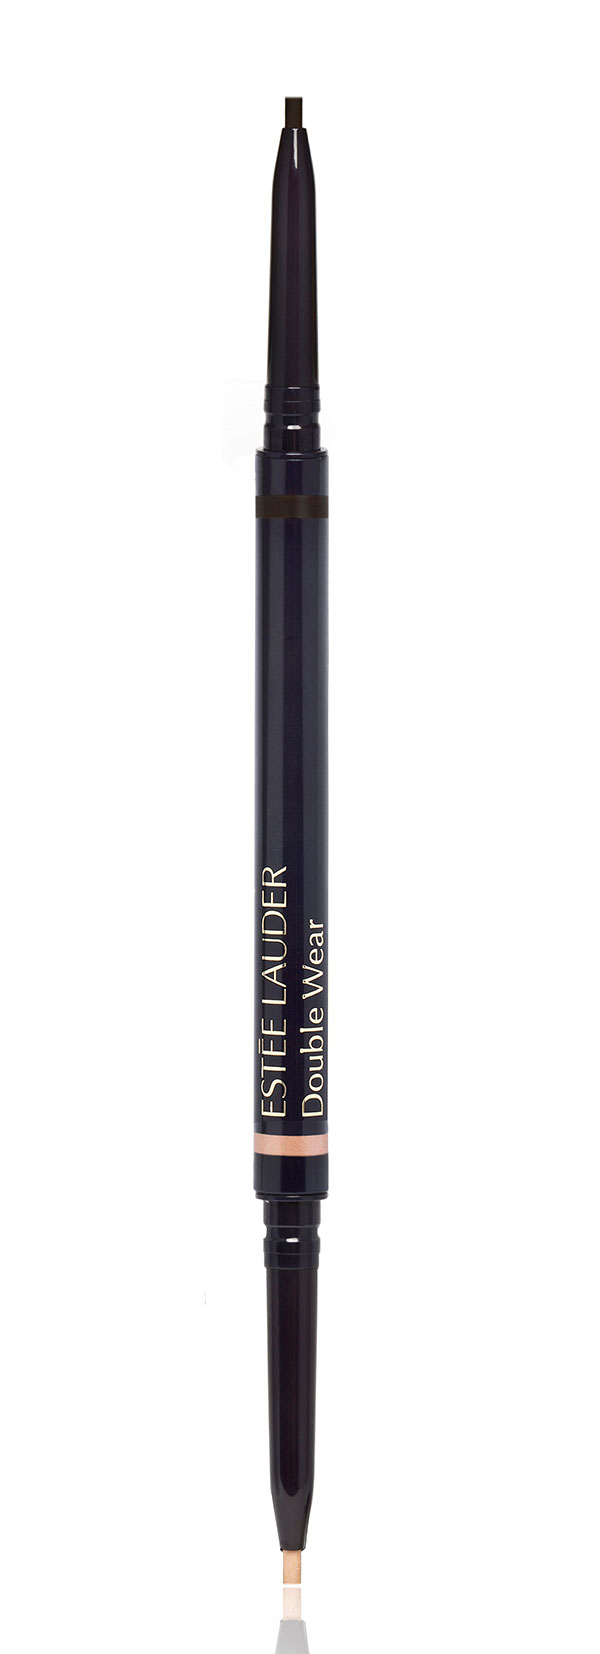 7,Double-Wear-Stay-in-Place-Brow-Lift-Duo_Black-Brown_Cap-Off_No-Expiration